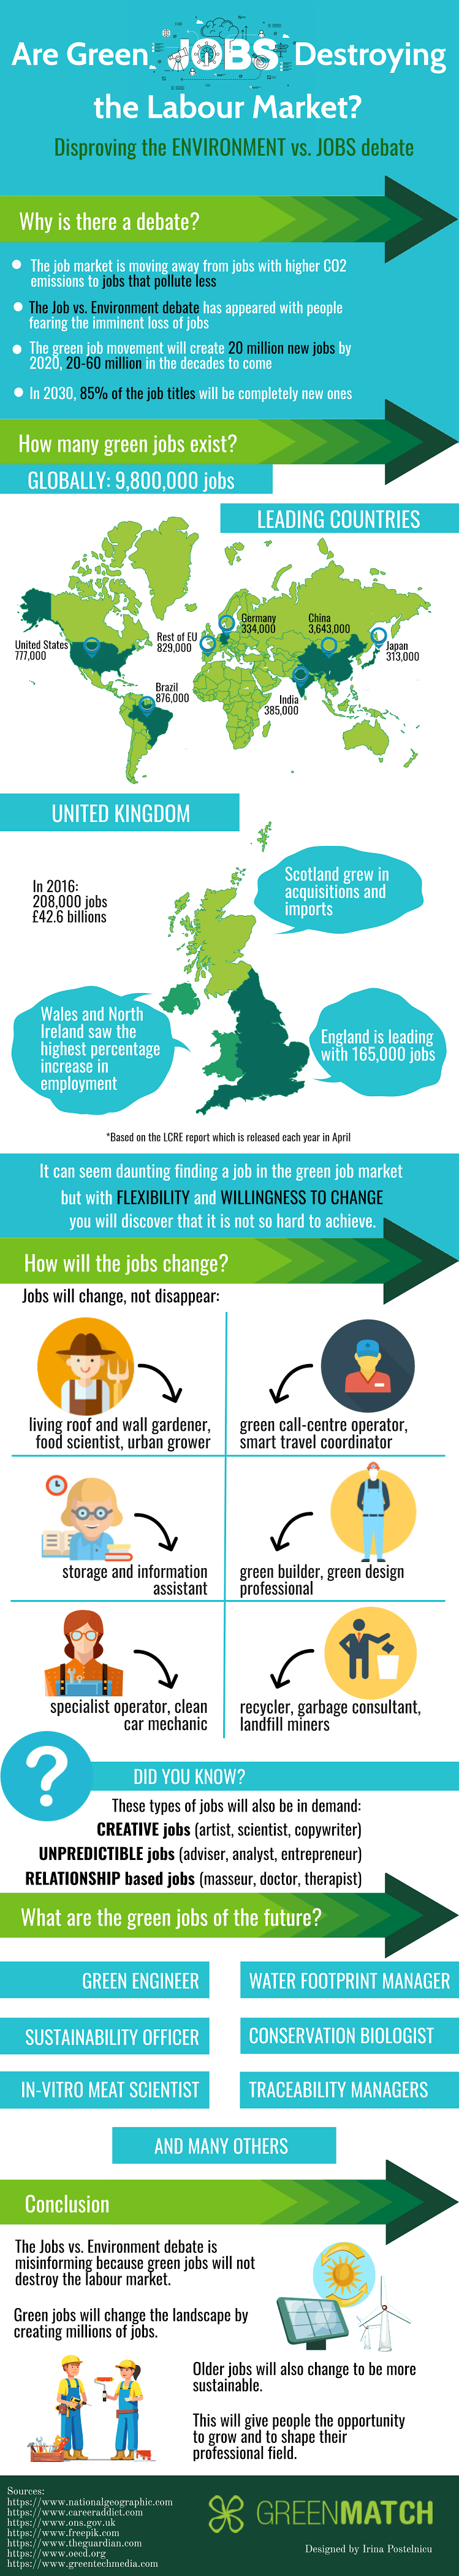 Infographic-Do green jobs affect the labour market?